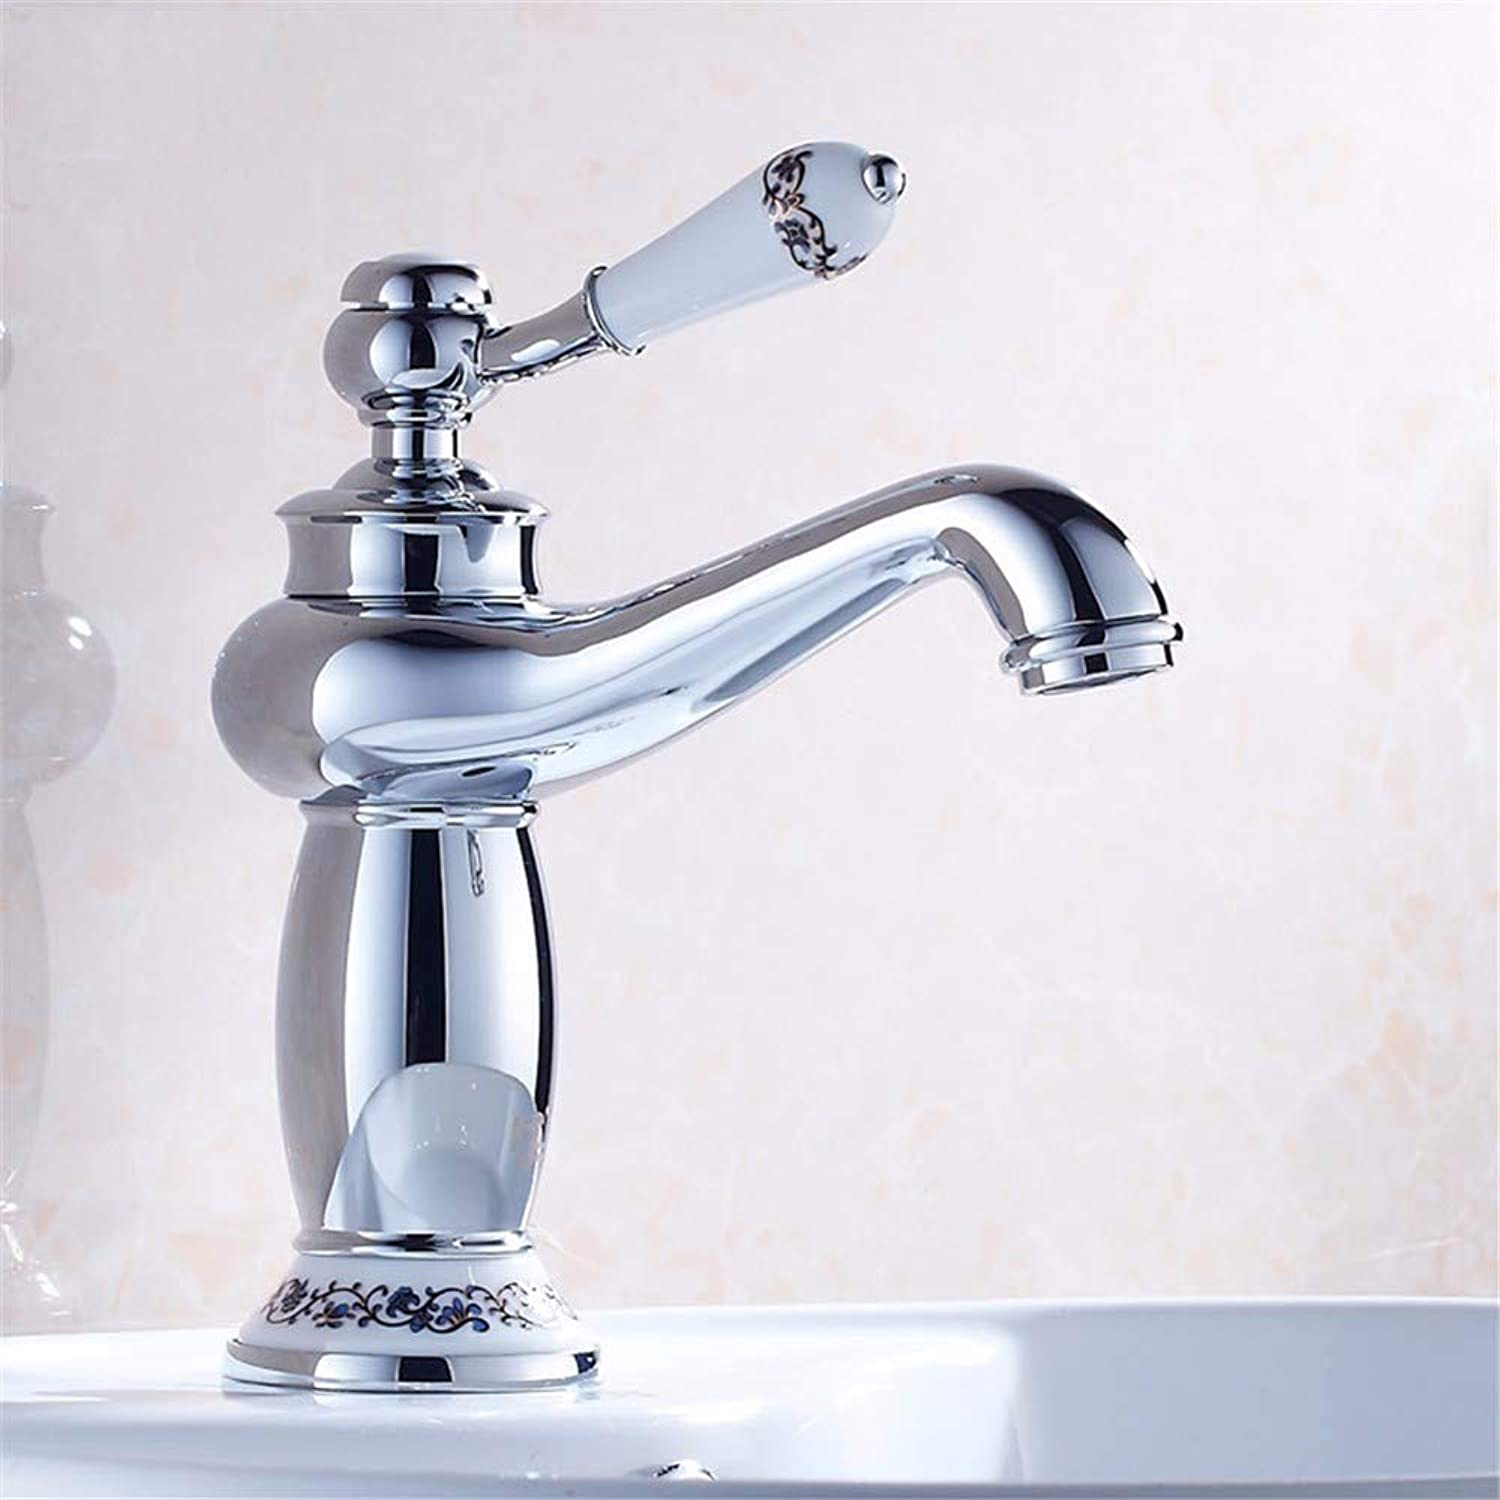 Pyty123-Faucet Washbasin Faucet Hot And Cold Water Faucet Basin Faucet European American Vintage bluee And White Porcelain Washbasin, Chrome